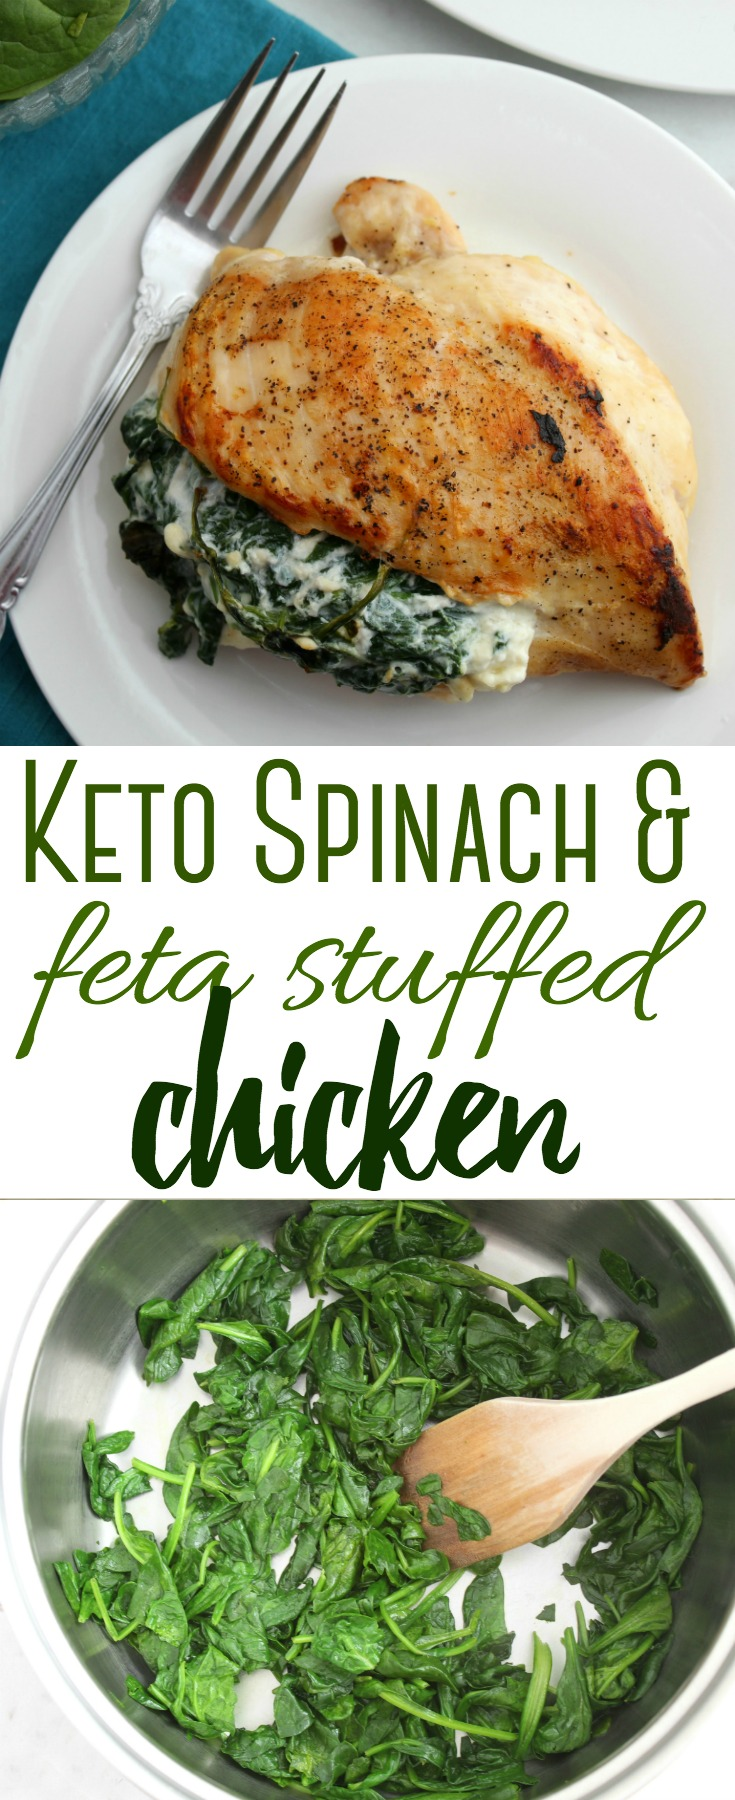 This low-carb Keto Spinach and Feta Stuffed Chicken is a keto-lovers dream! Not only is it easy to make, it's a crowd-pleaser that's also gluten-free!